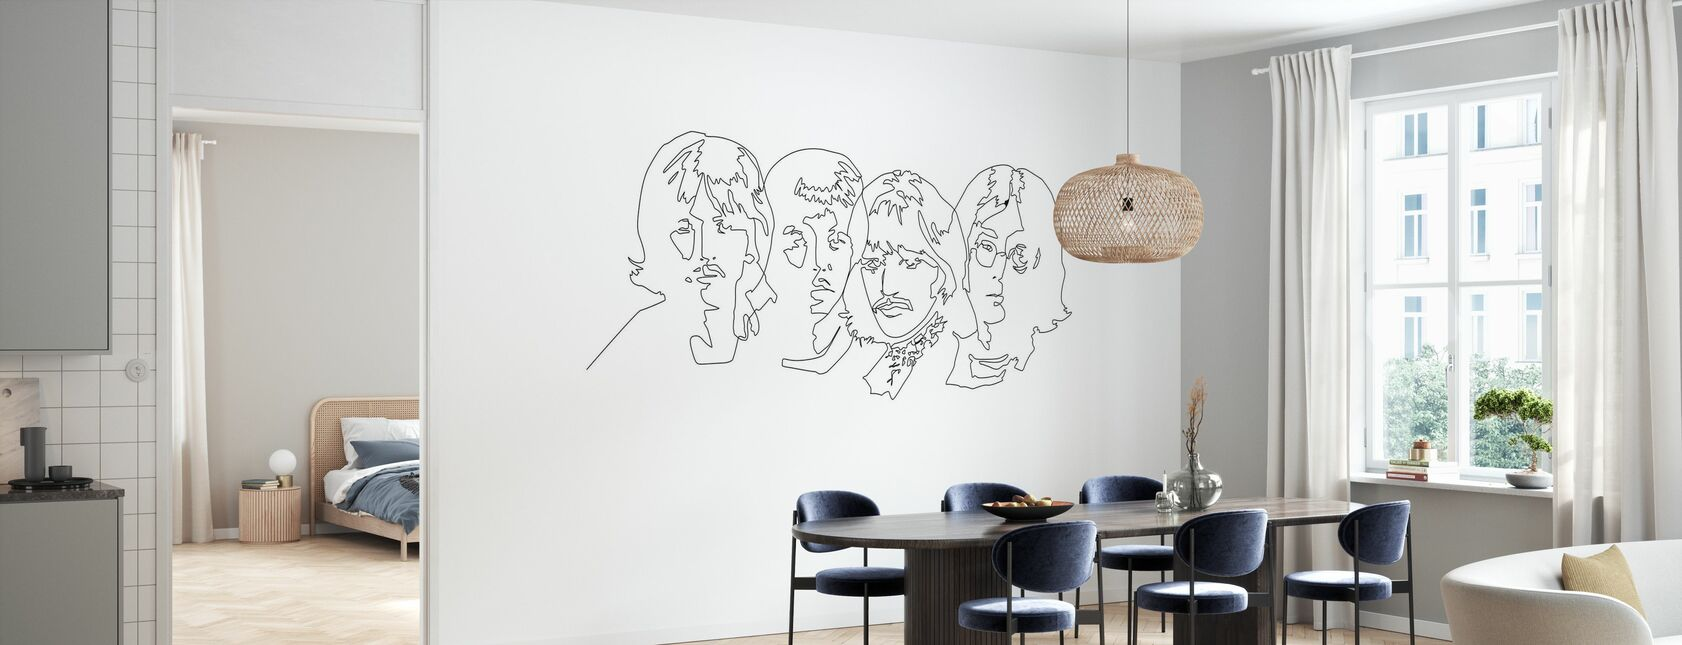 Beatles - Outline - Wallpaper - Kitchen